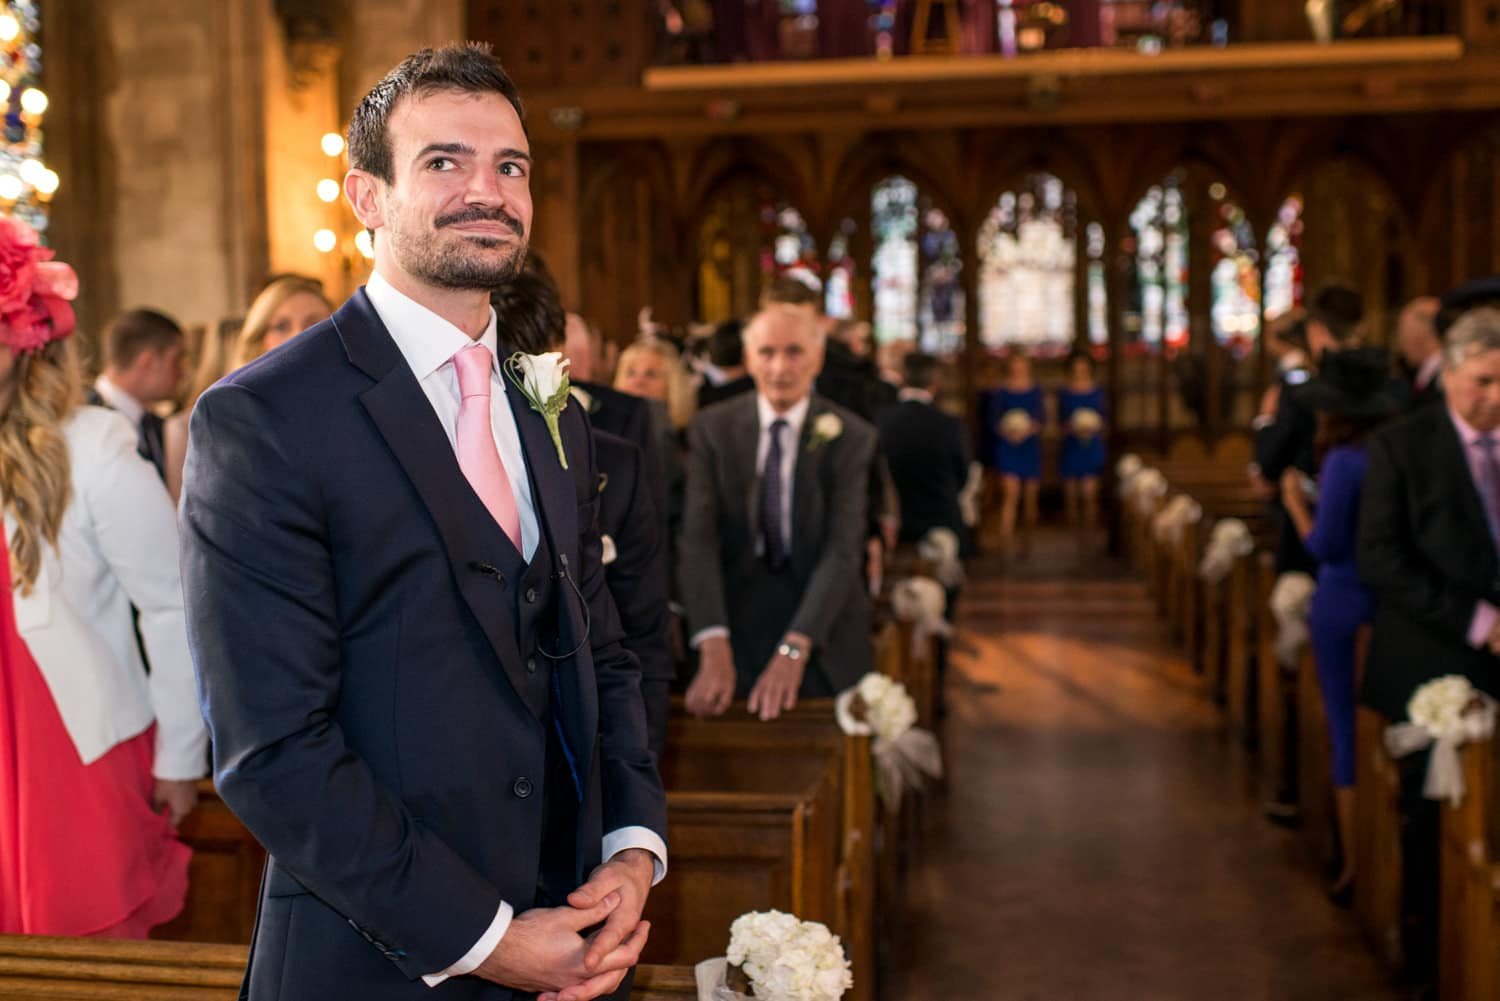 groom waiting at the alter of St Etheldredas church